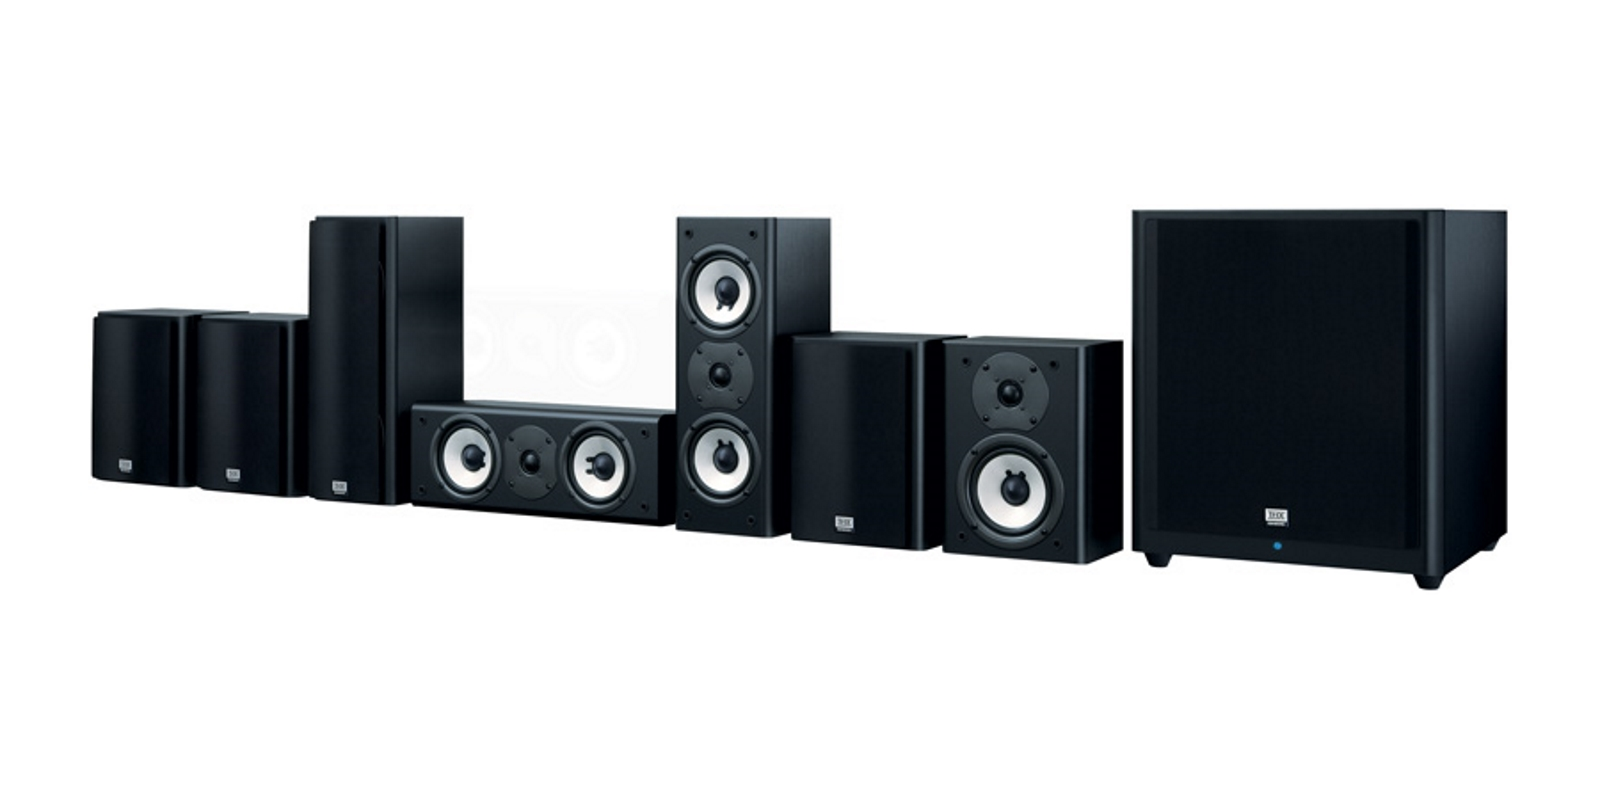 Onkyo SKS-HT993THX 7.1-Channel Home Theater Speaker System by Onkyo